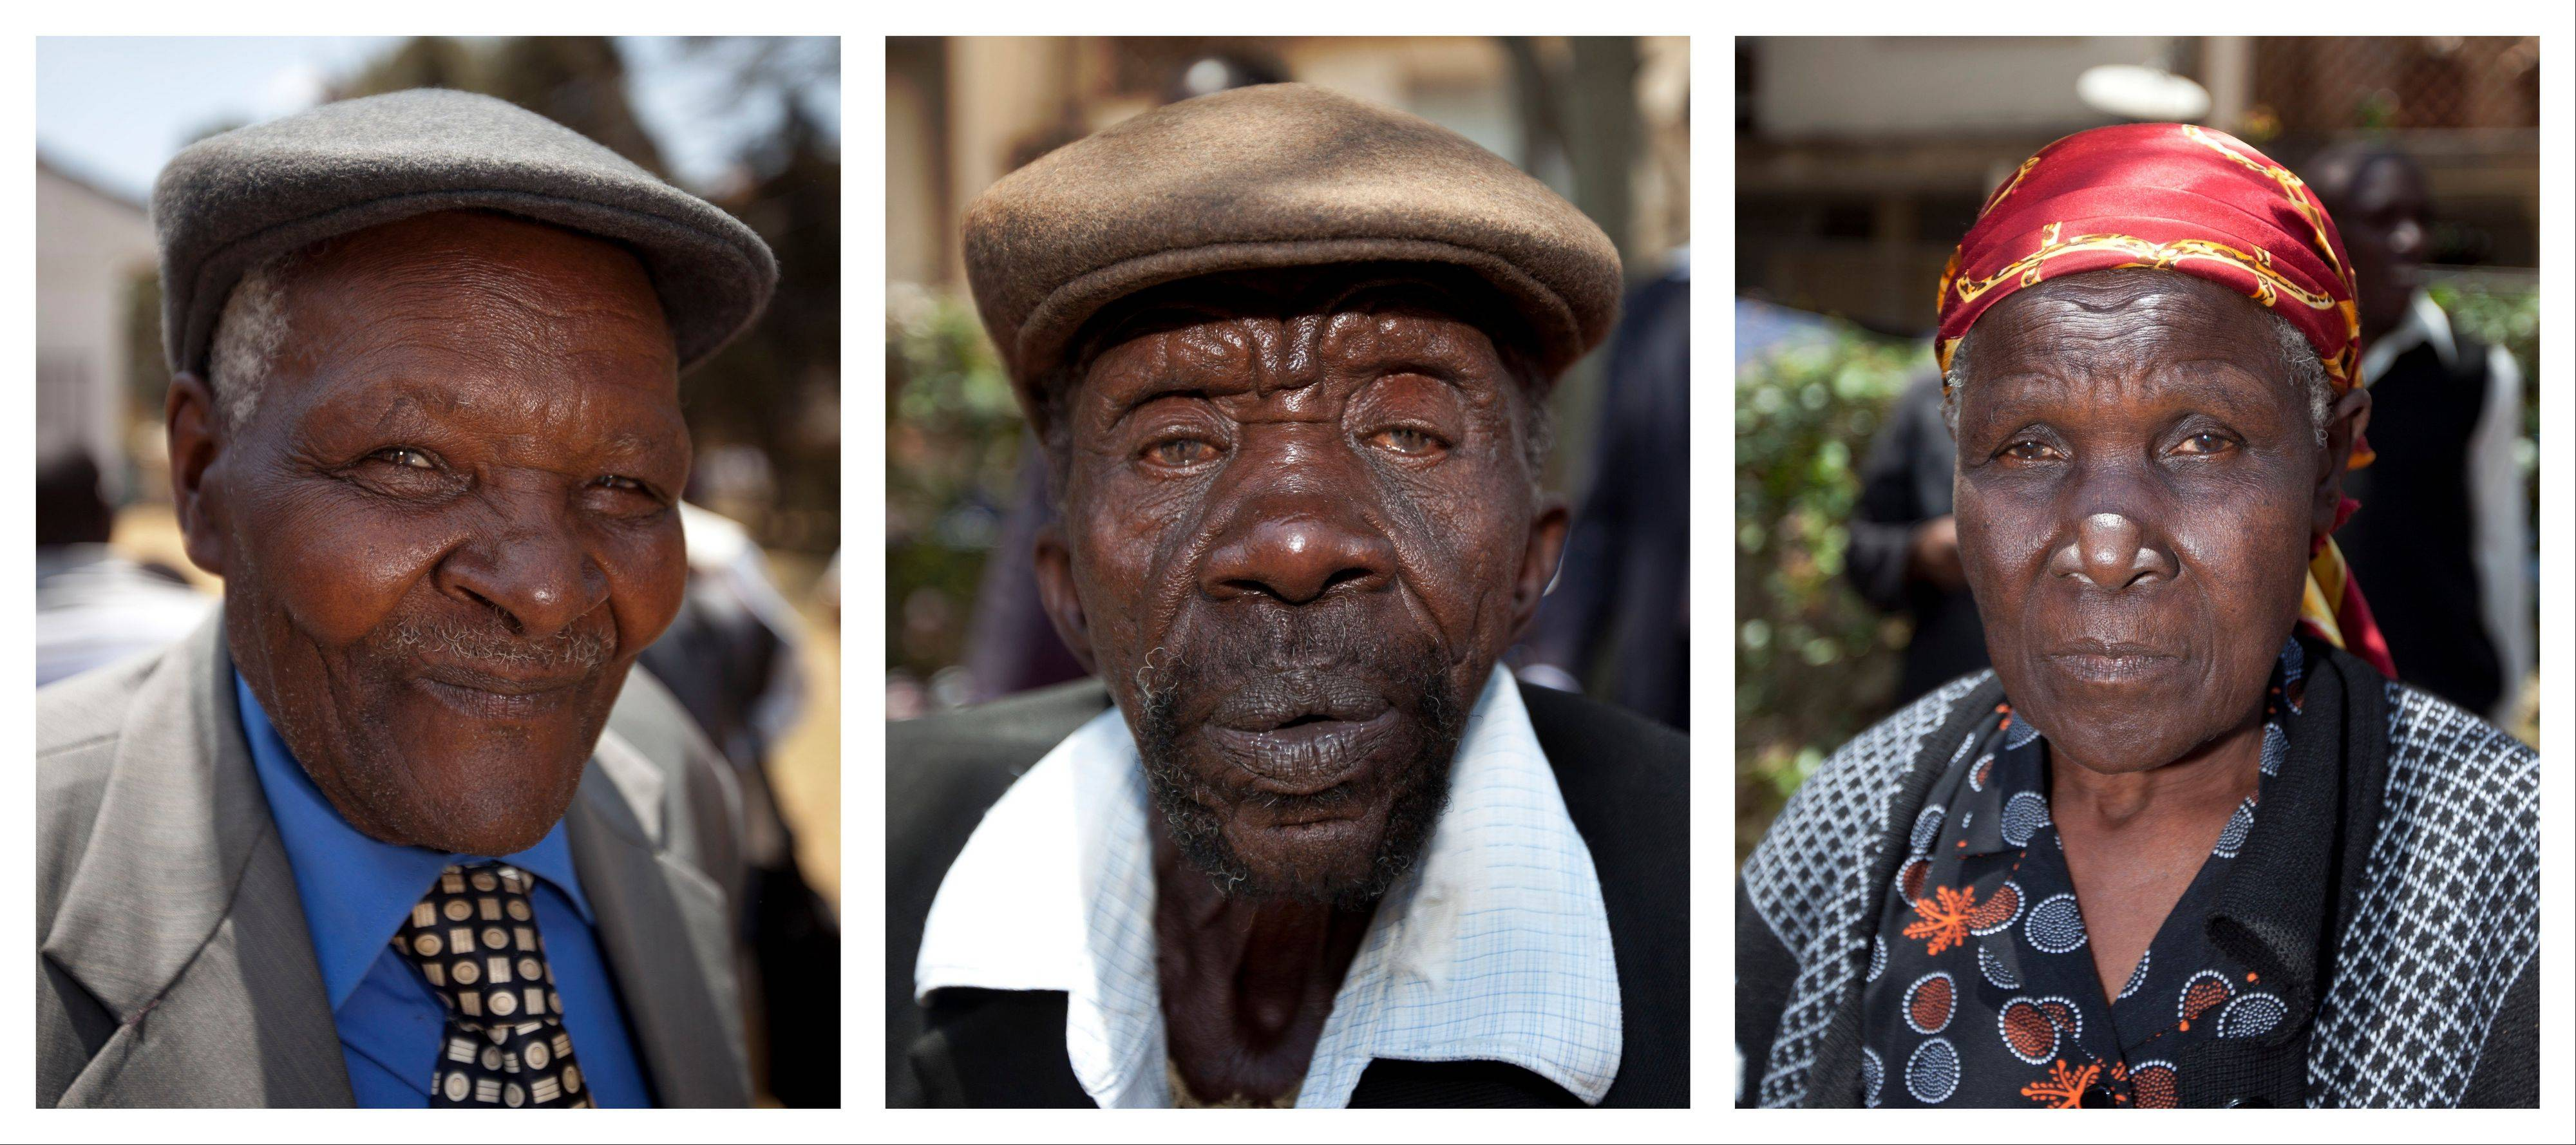 This combination photograph shows, left to right, Kenyans Wambuga Wa Nyingi, Paulo Muoka Nzili, and Jane Muthoni Mara. Britain's High Court ruled Friday that the three Kenyans tortured during the Mau Mau rebellion against British colonial rule can proceed with compensation claims against the British government.